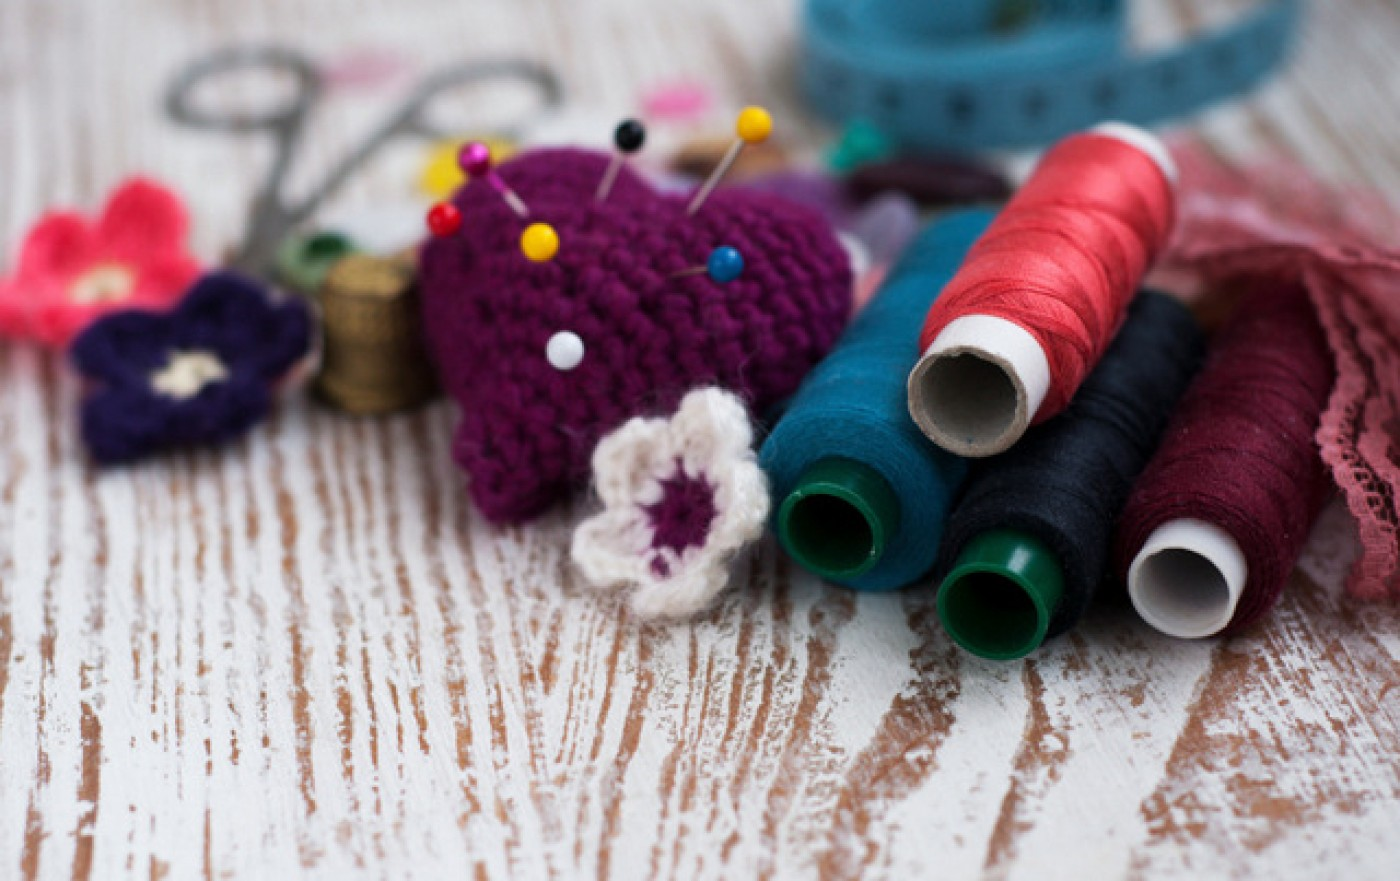 Sew and Sew craft group on Camposol